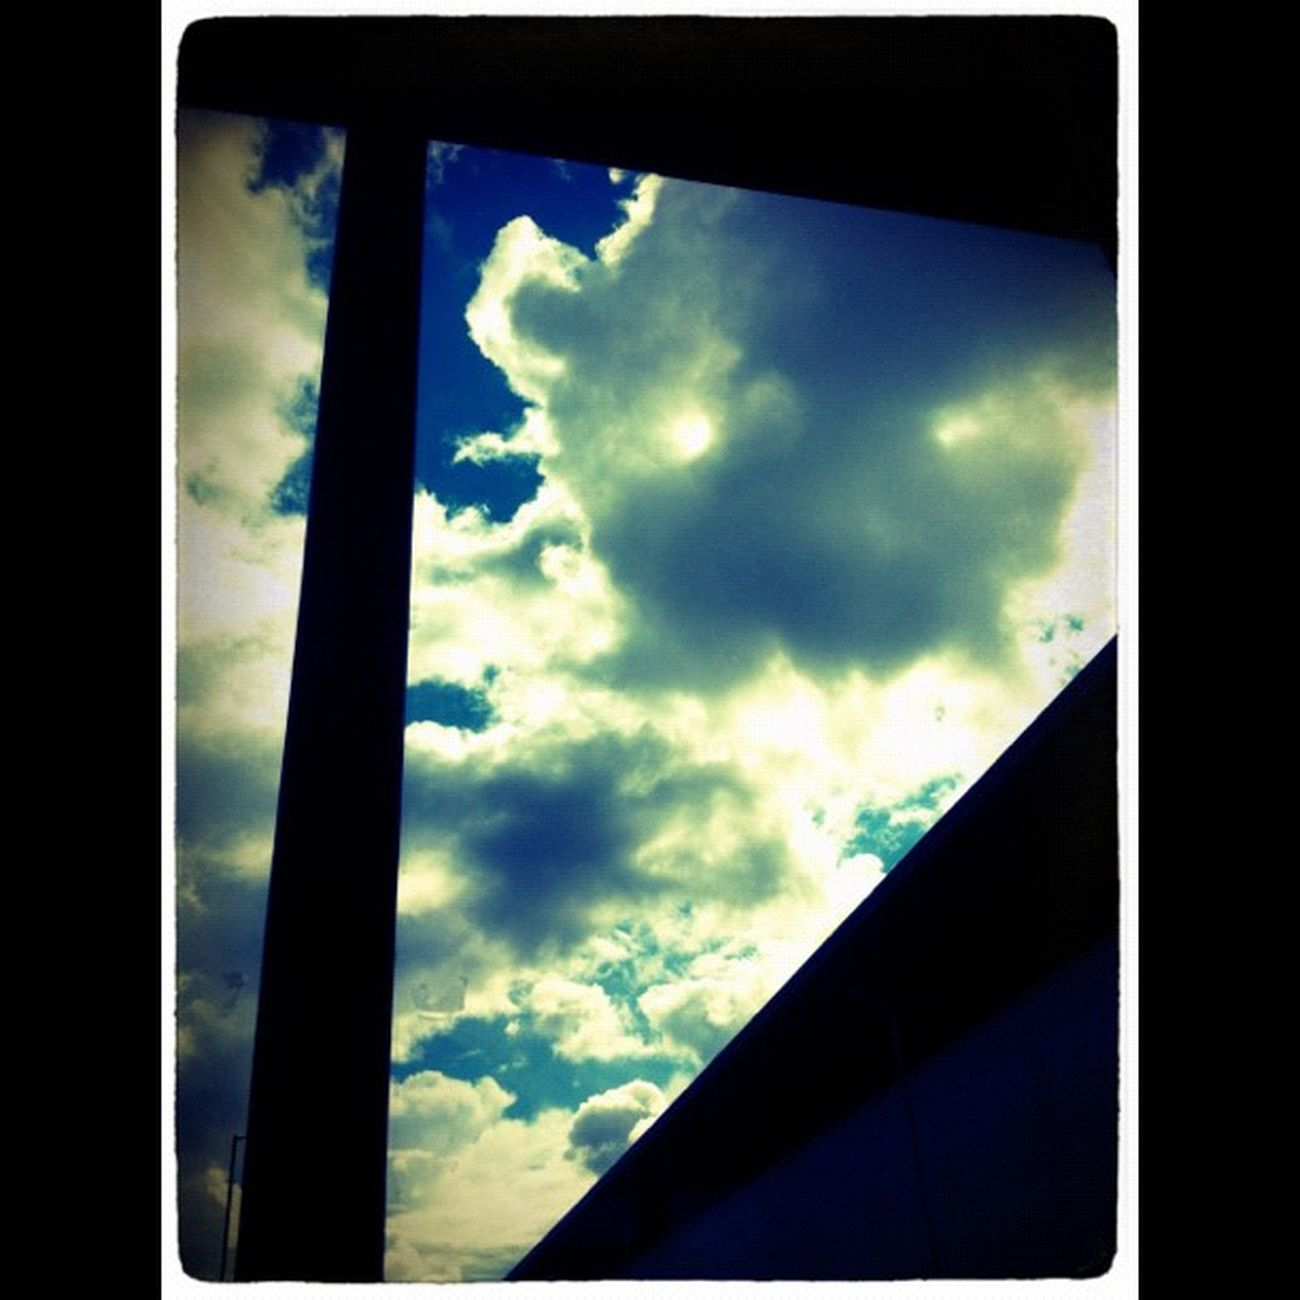 #igers_uk #sky #cloud #bedsigers #instagood Sky Cloud Instagood Bedsigers Igers_uk